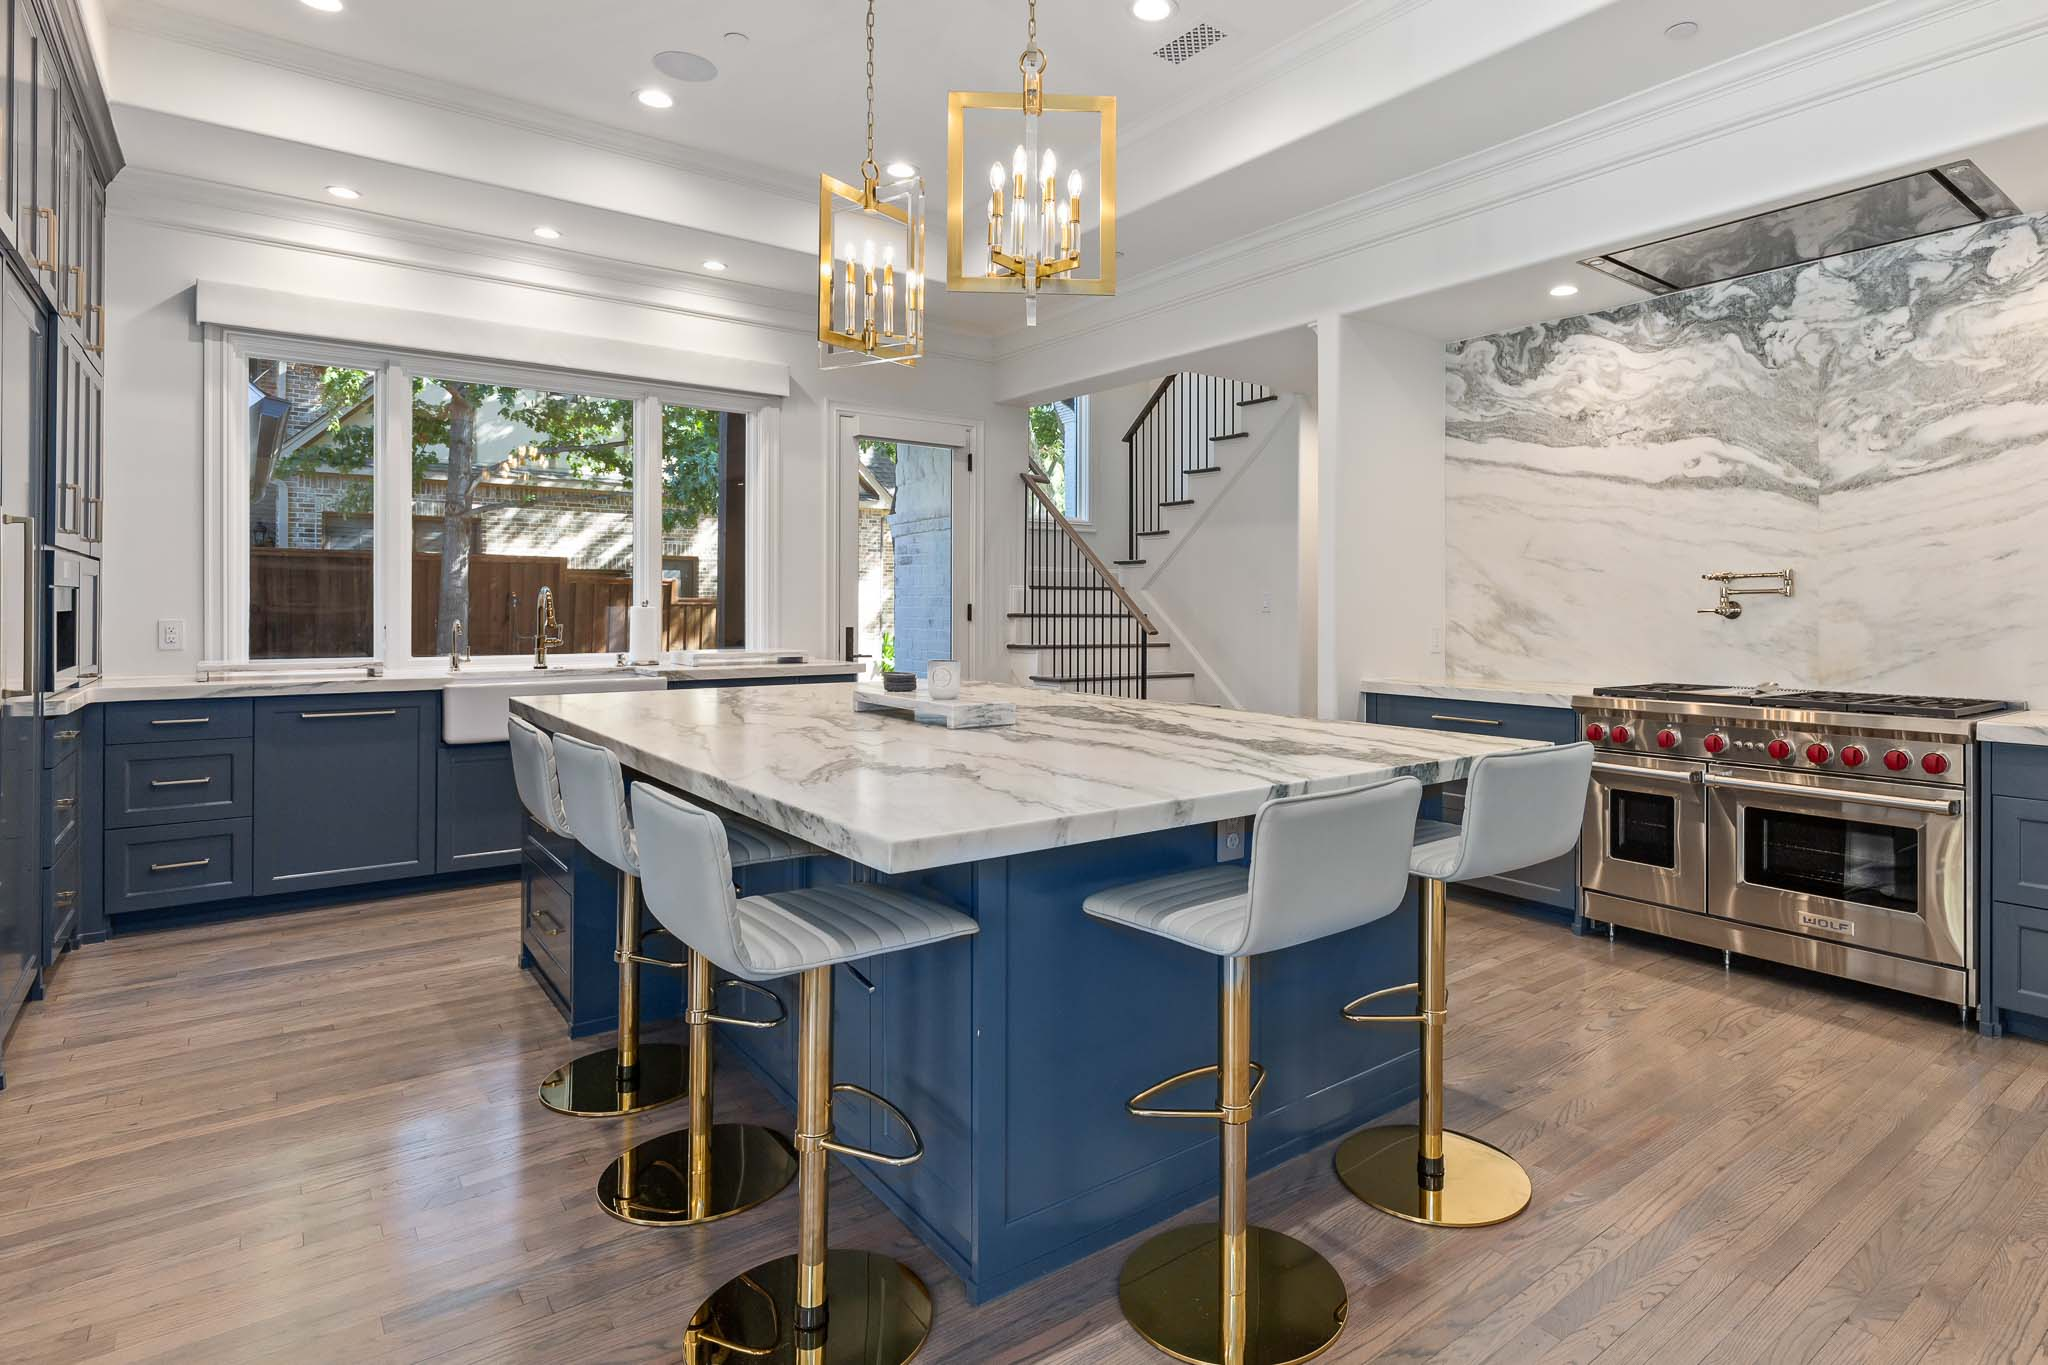 Chef's kitchen with upscale appliances and blue kitchen island